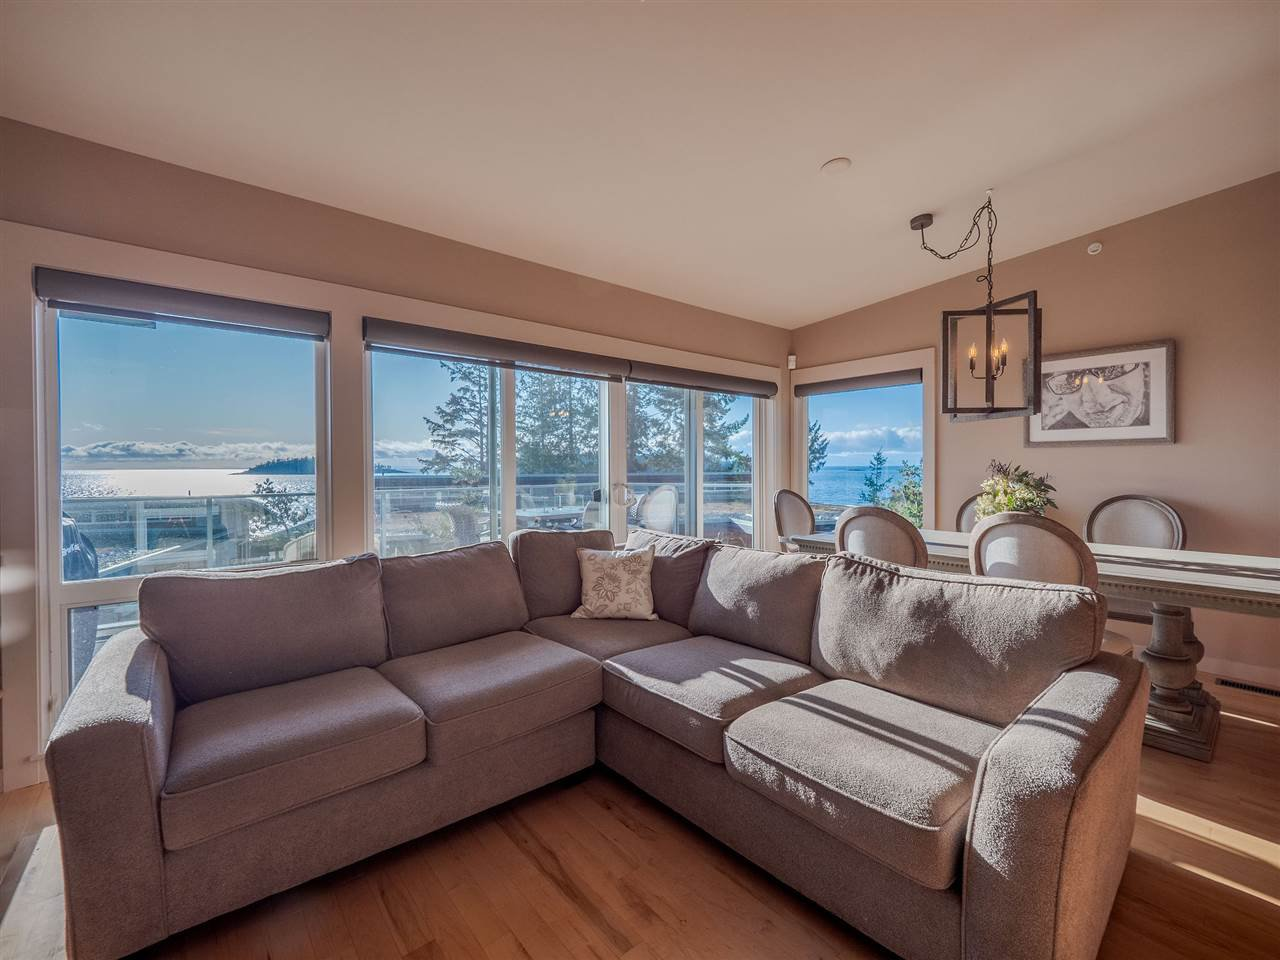 The Living room has spectacular Trail Island ocean views and loaded with natural light